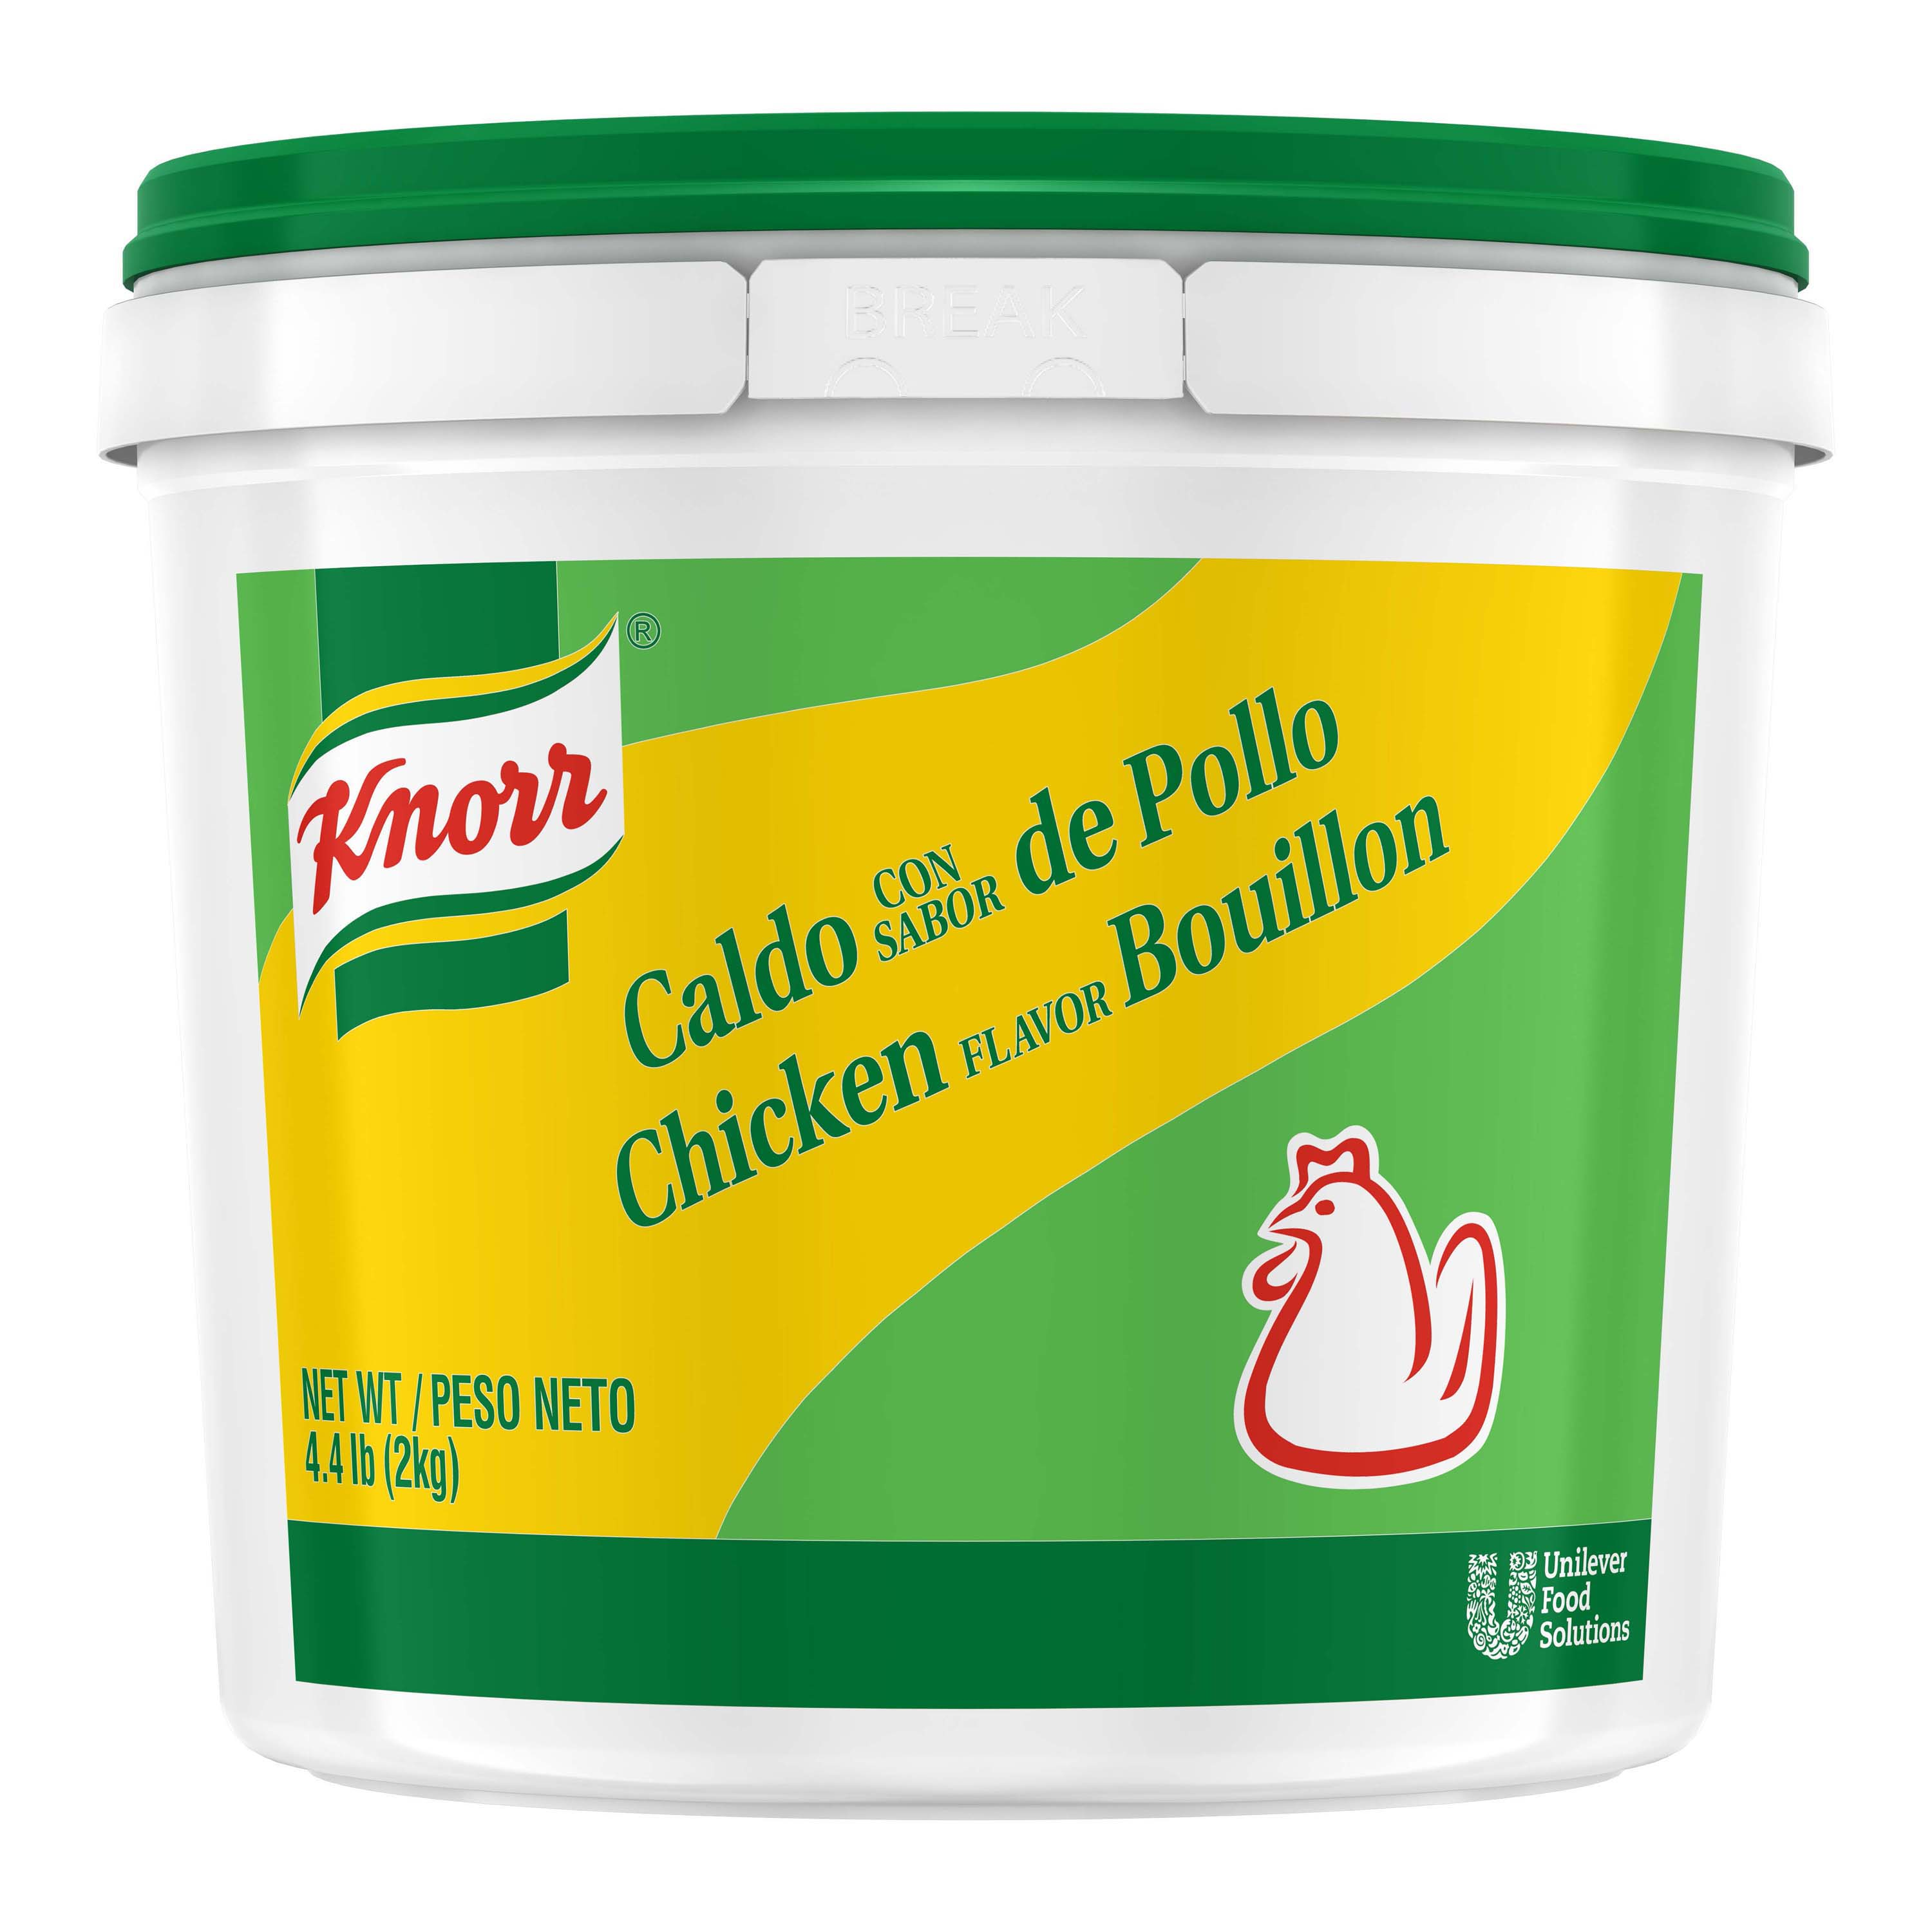 Knorr Bouillon Powder Caldo de Pollo / Chicken Bouillon 4.4 LB